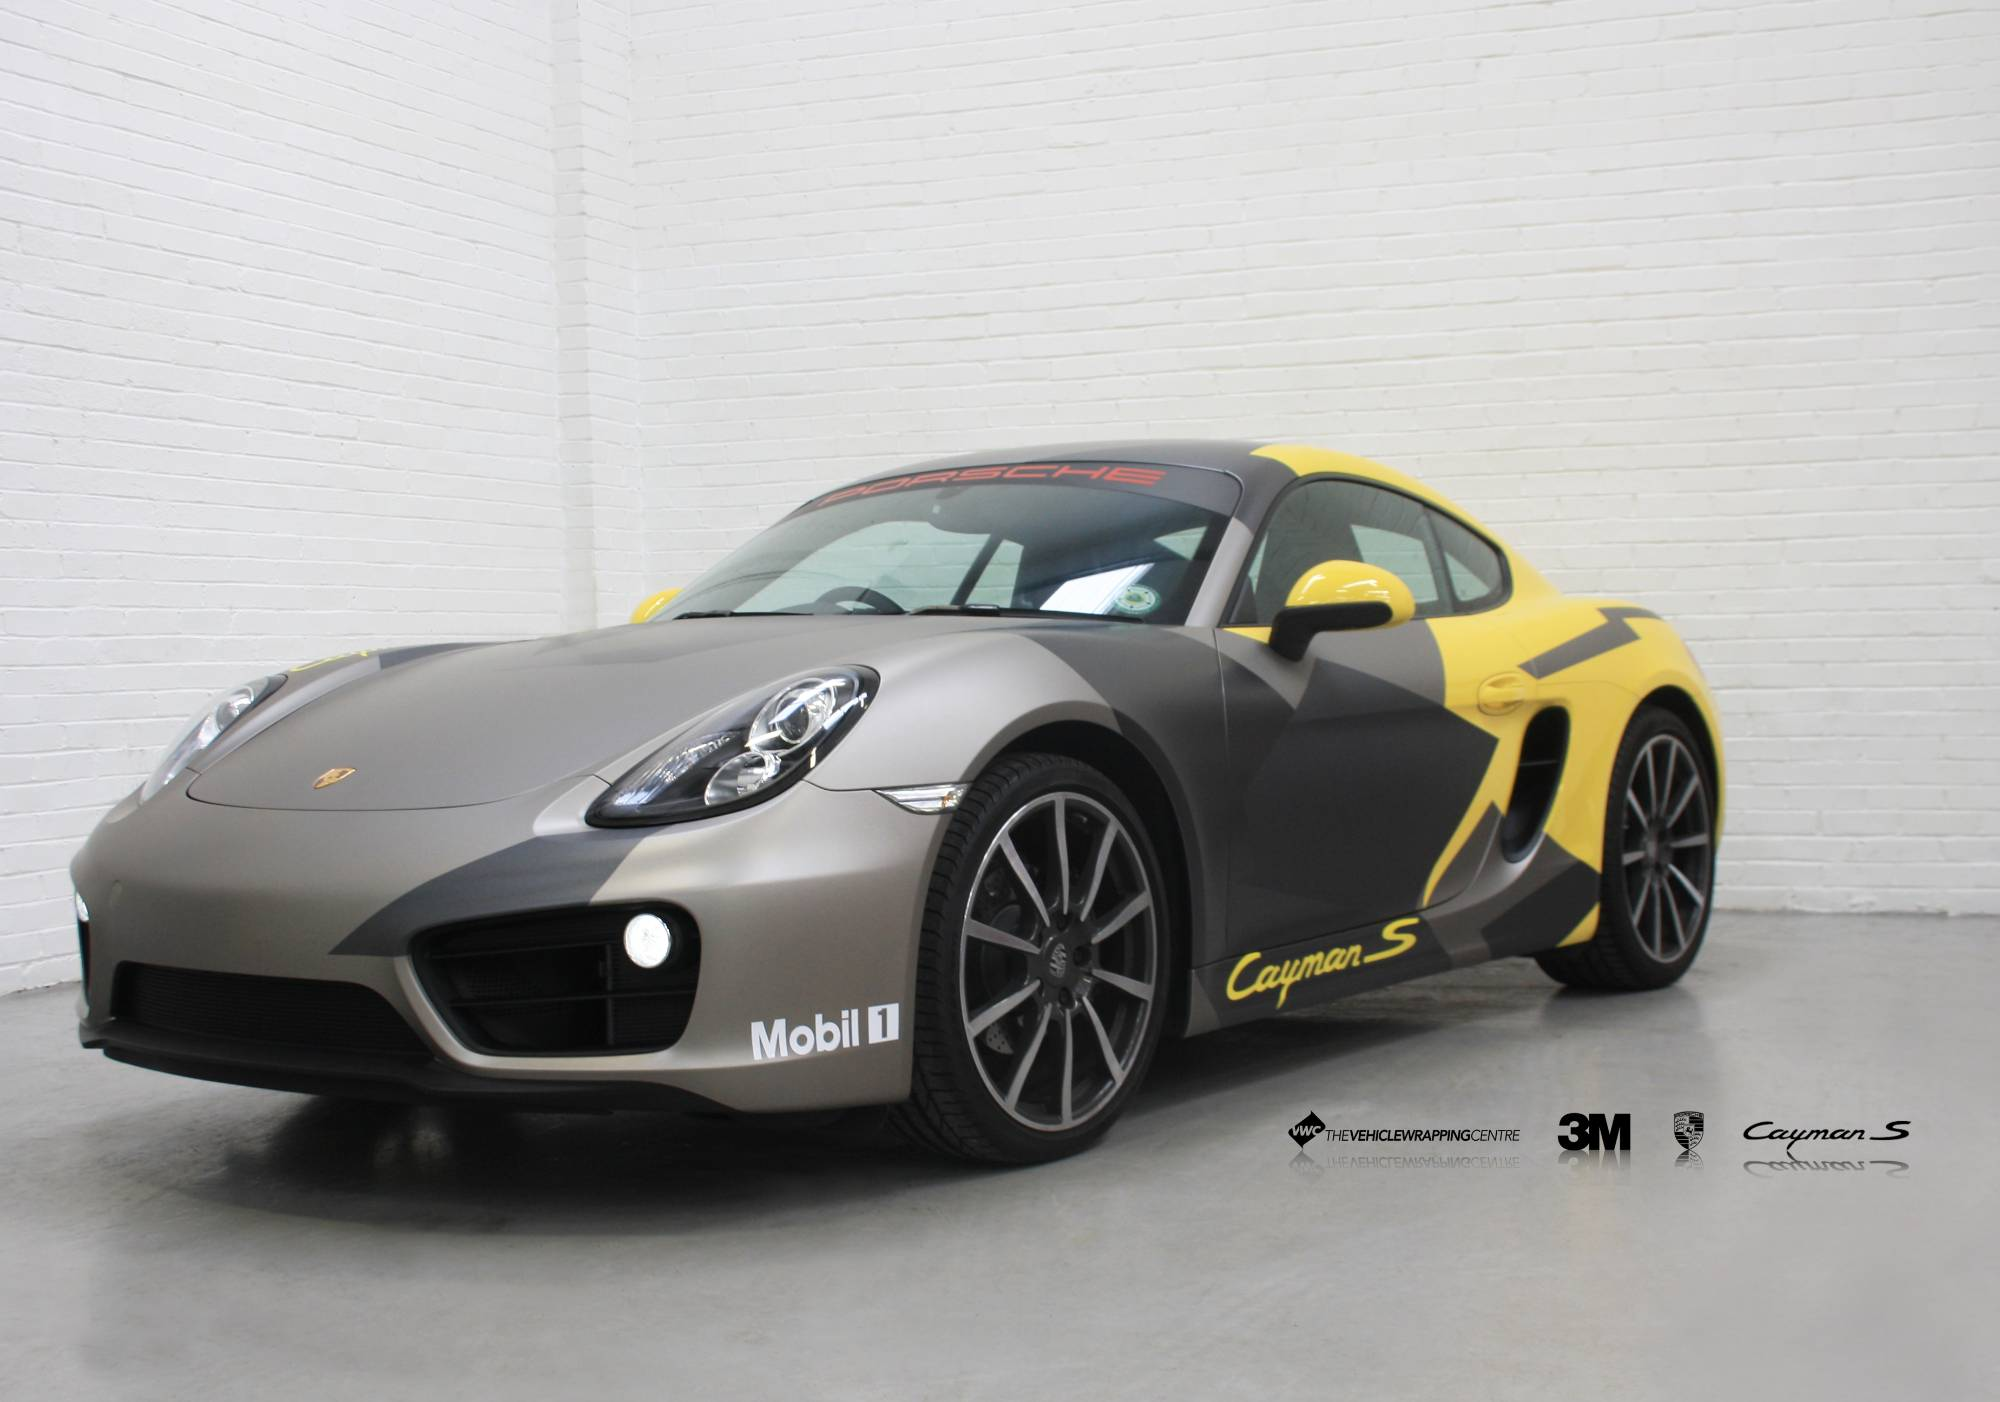 porsche cayman s gt4 clubsport livery personal vehicle wrap project. Black Bedroom Furniture Sets. Home Design Ideas